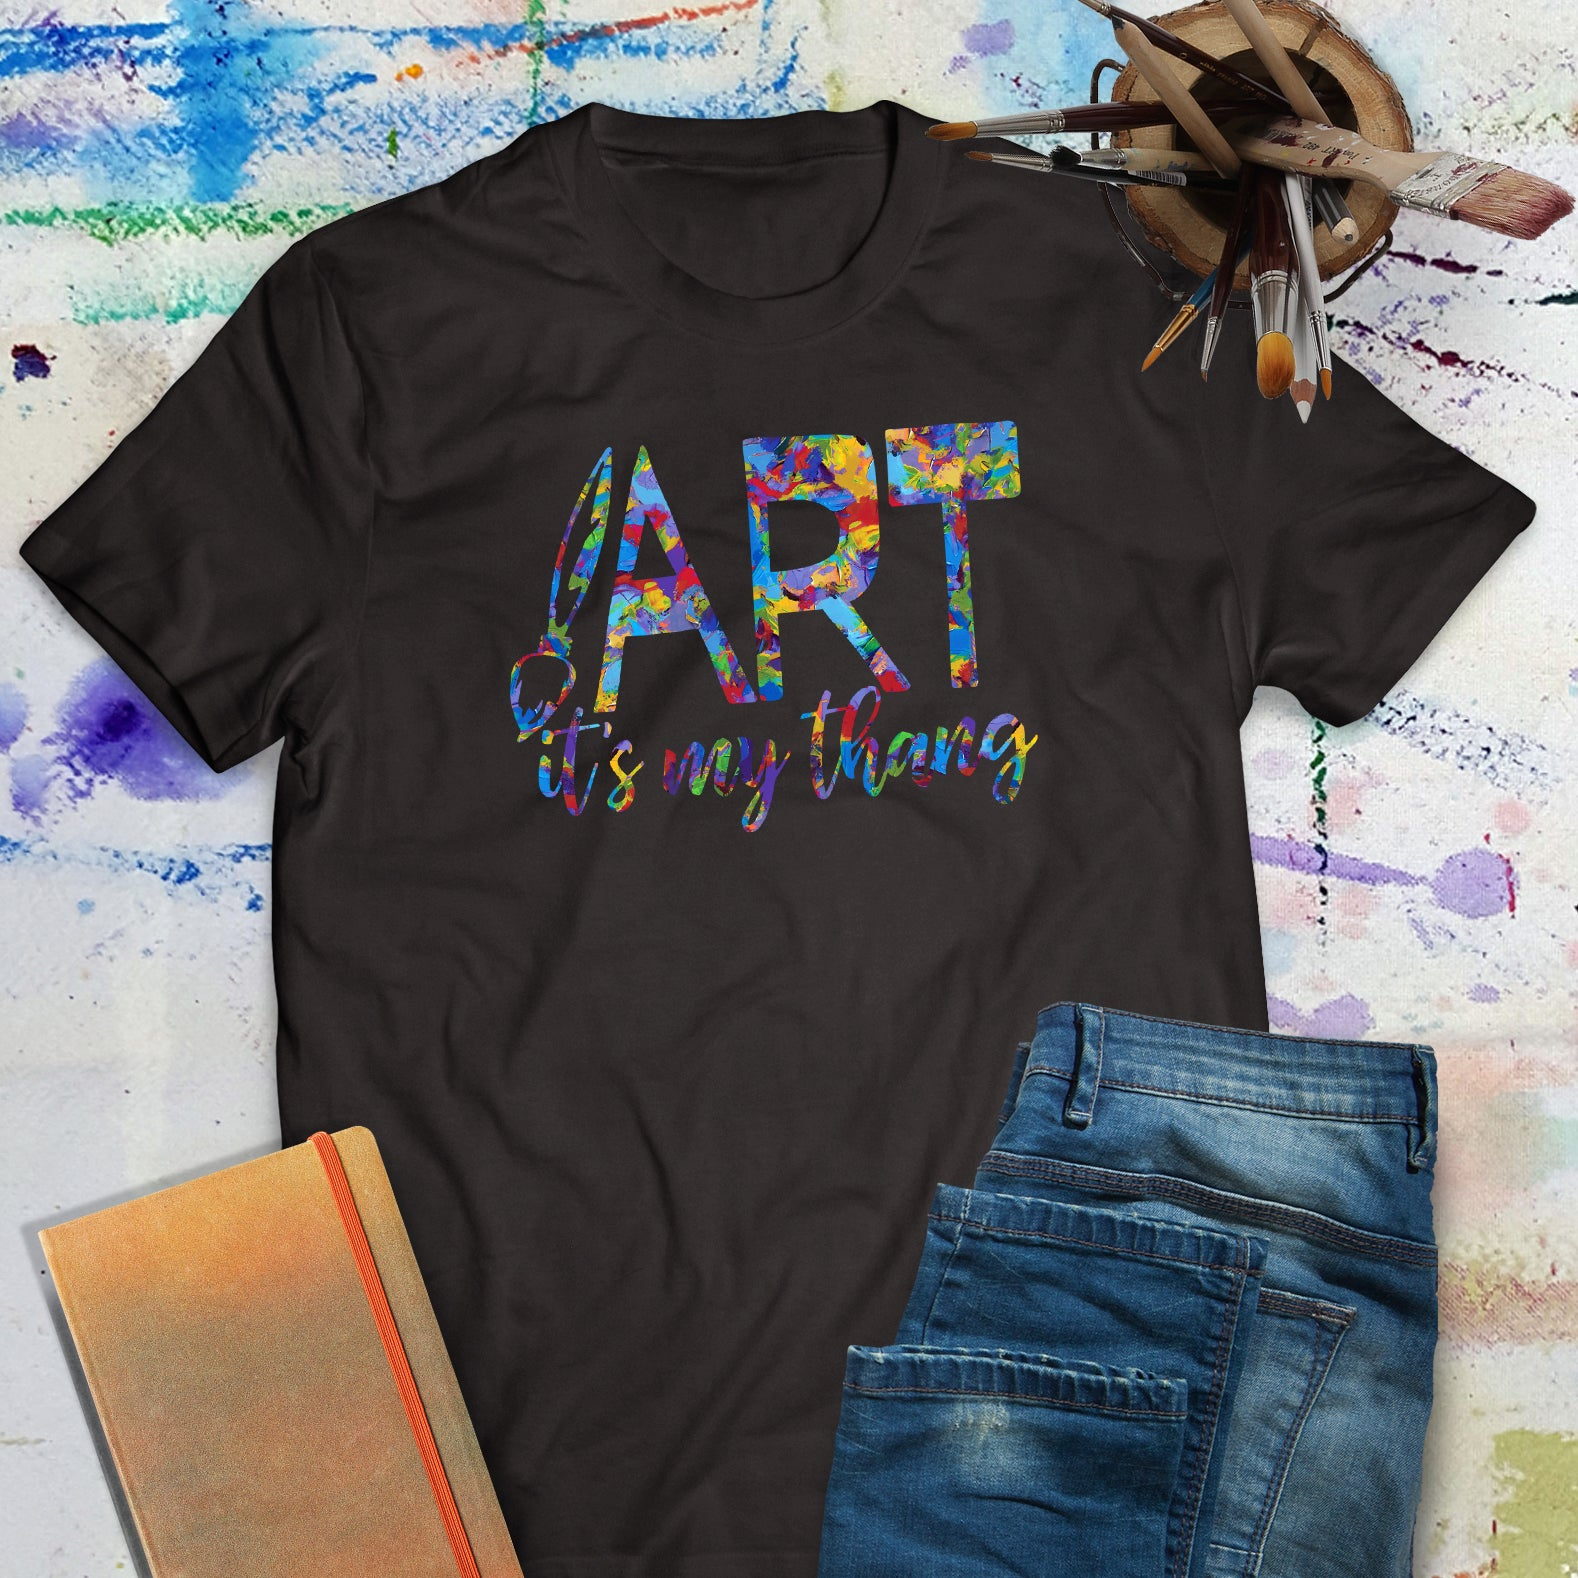 Art it's my thang - unisex artist tee shirt | Art Print Express Gear